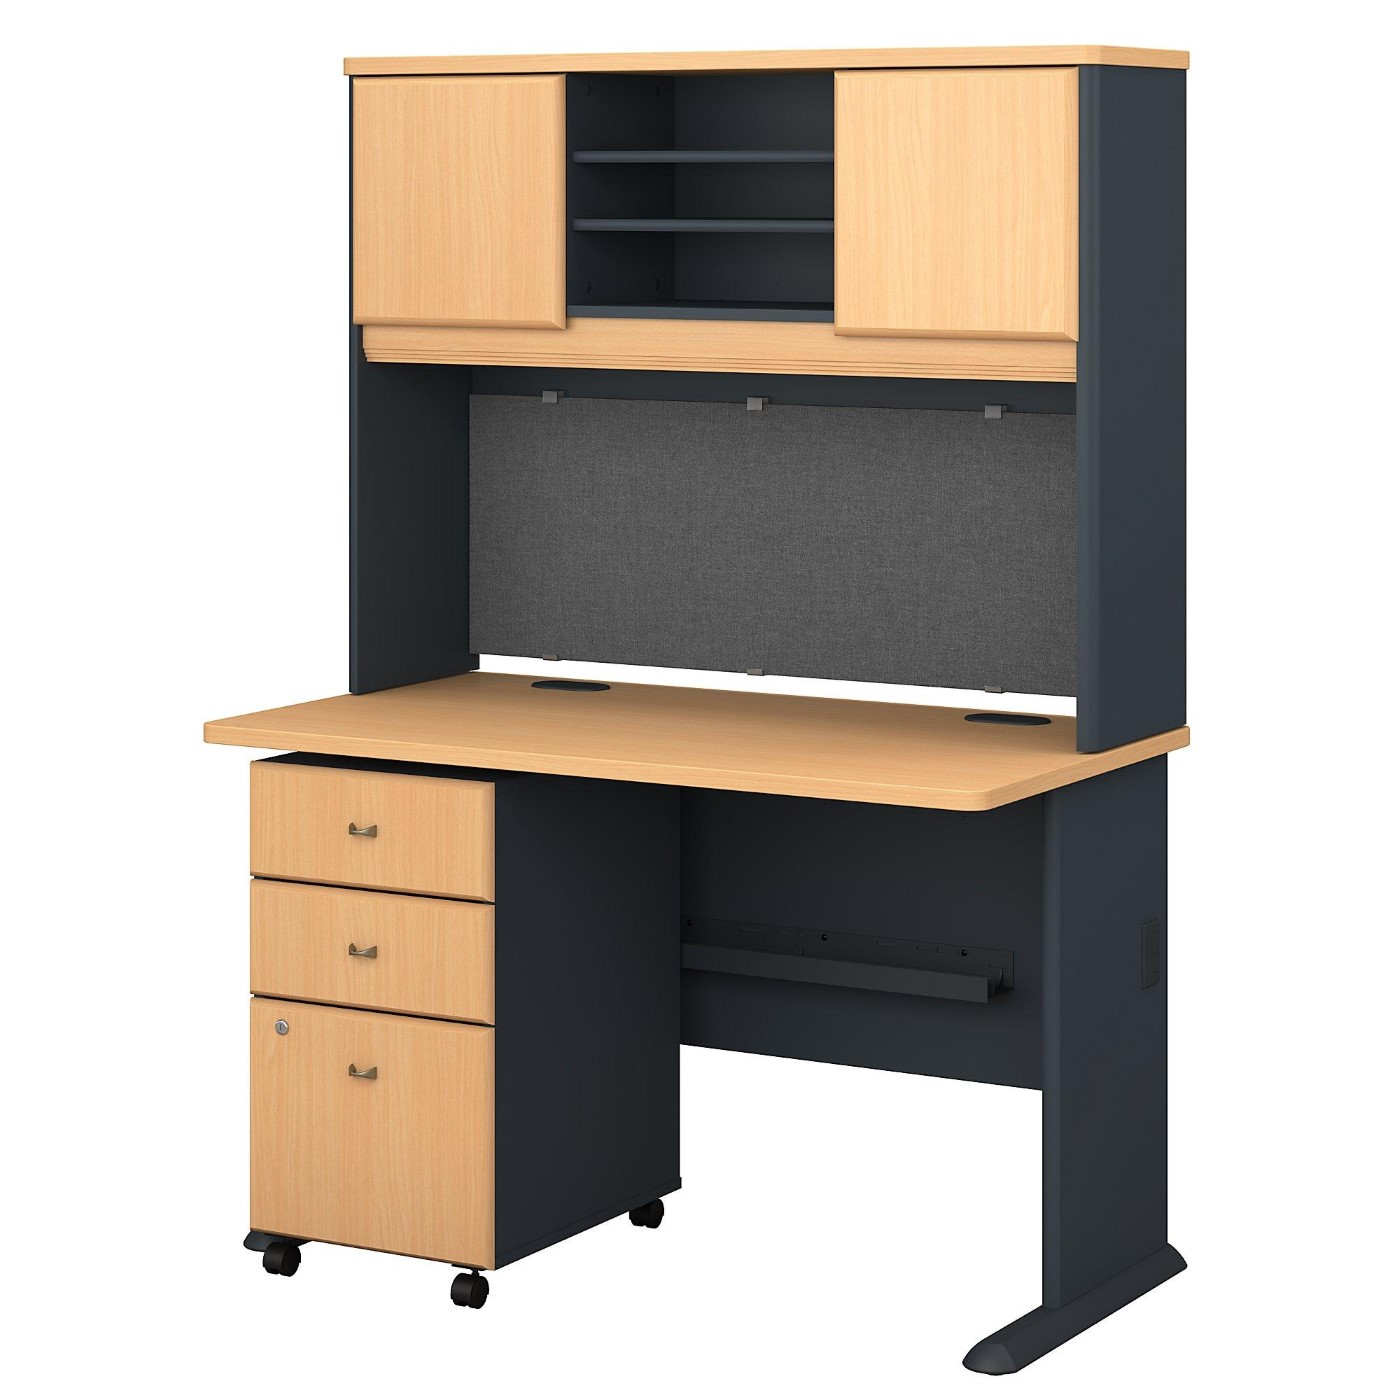 BUSH BUSINESS FURNITURE SERIES A 48W DESK WITH HUTCH AND MOBILE FILE CABINET. FREE SHIPPING.  SALE DEDUCT 10% MORE ENTER '10percent' IN COUPON CODE BOX WHILE CHECKING OUT.